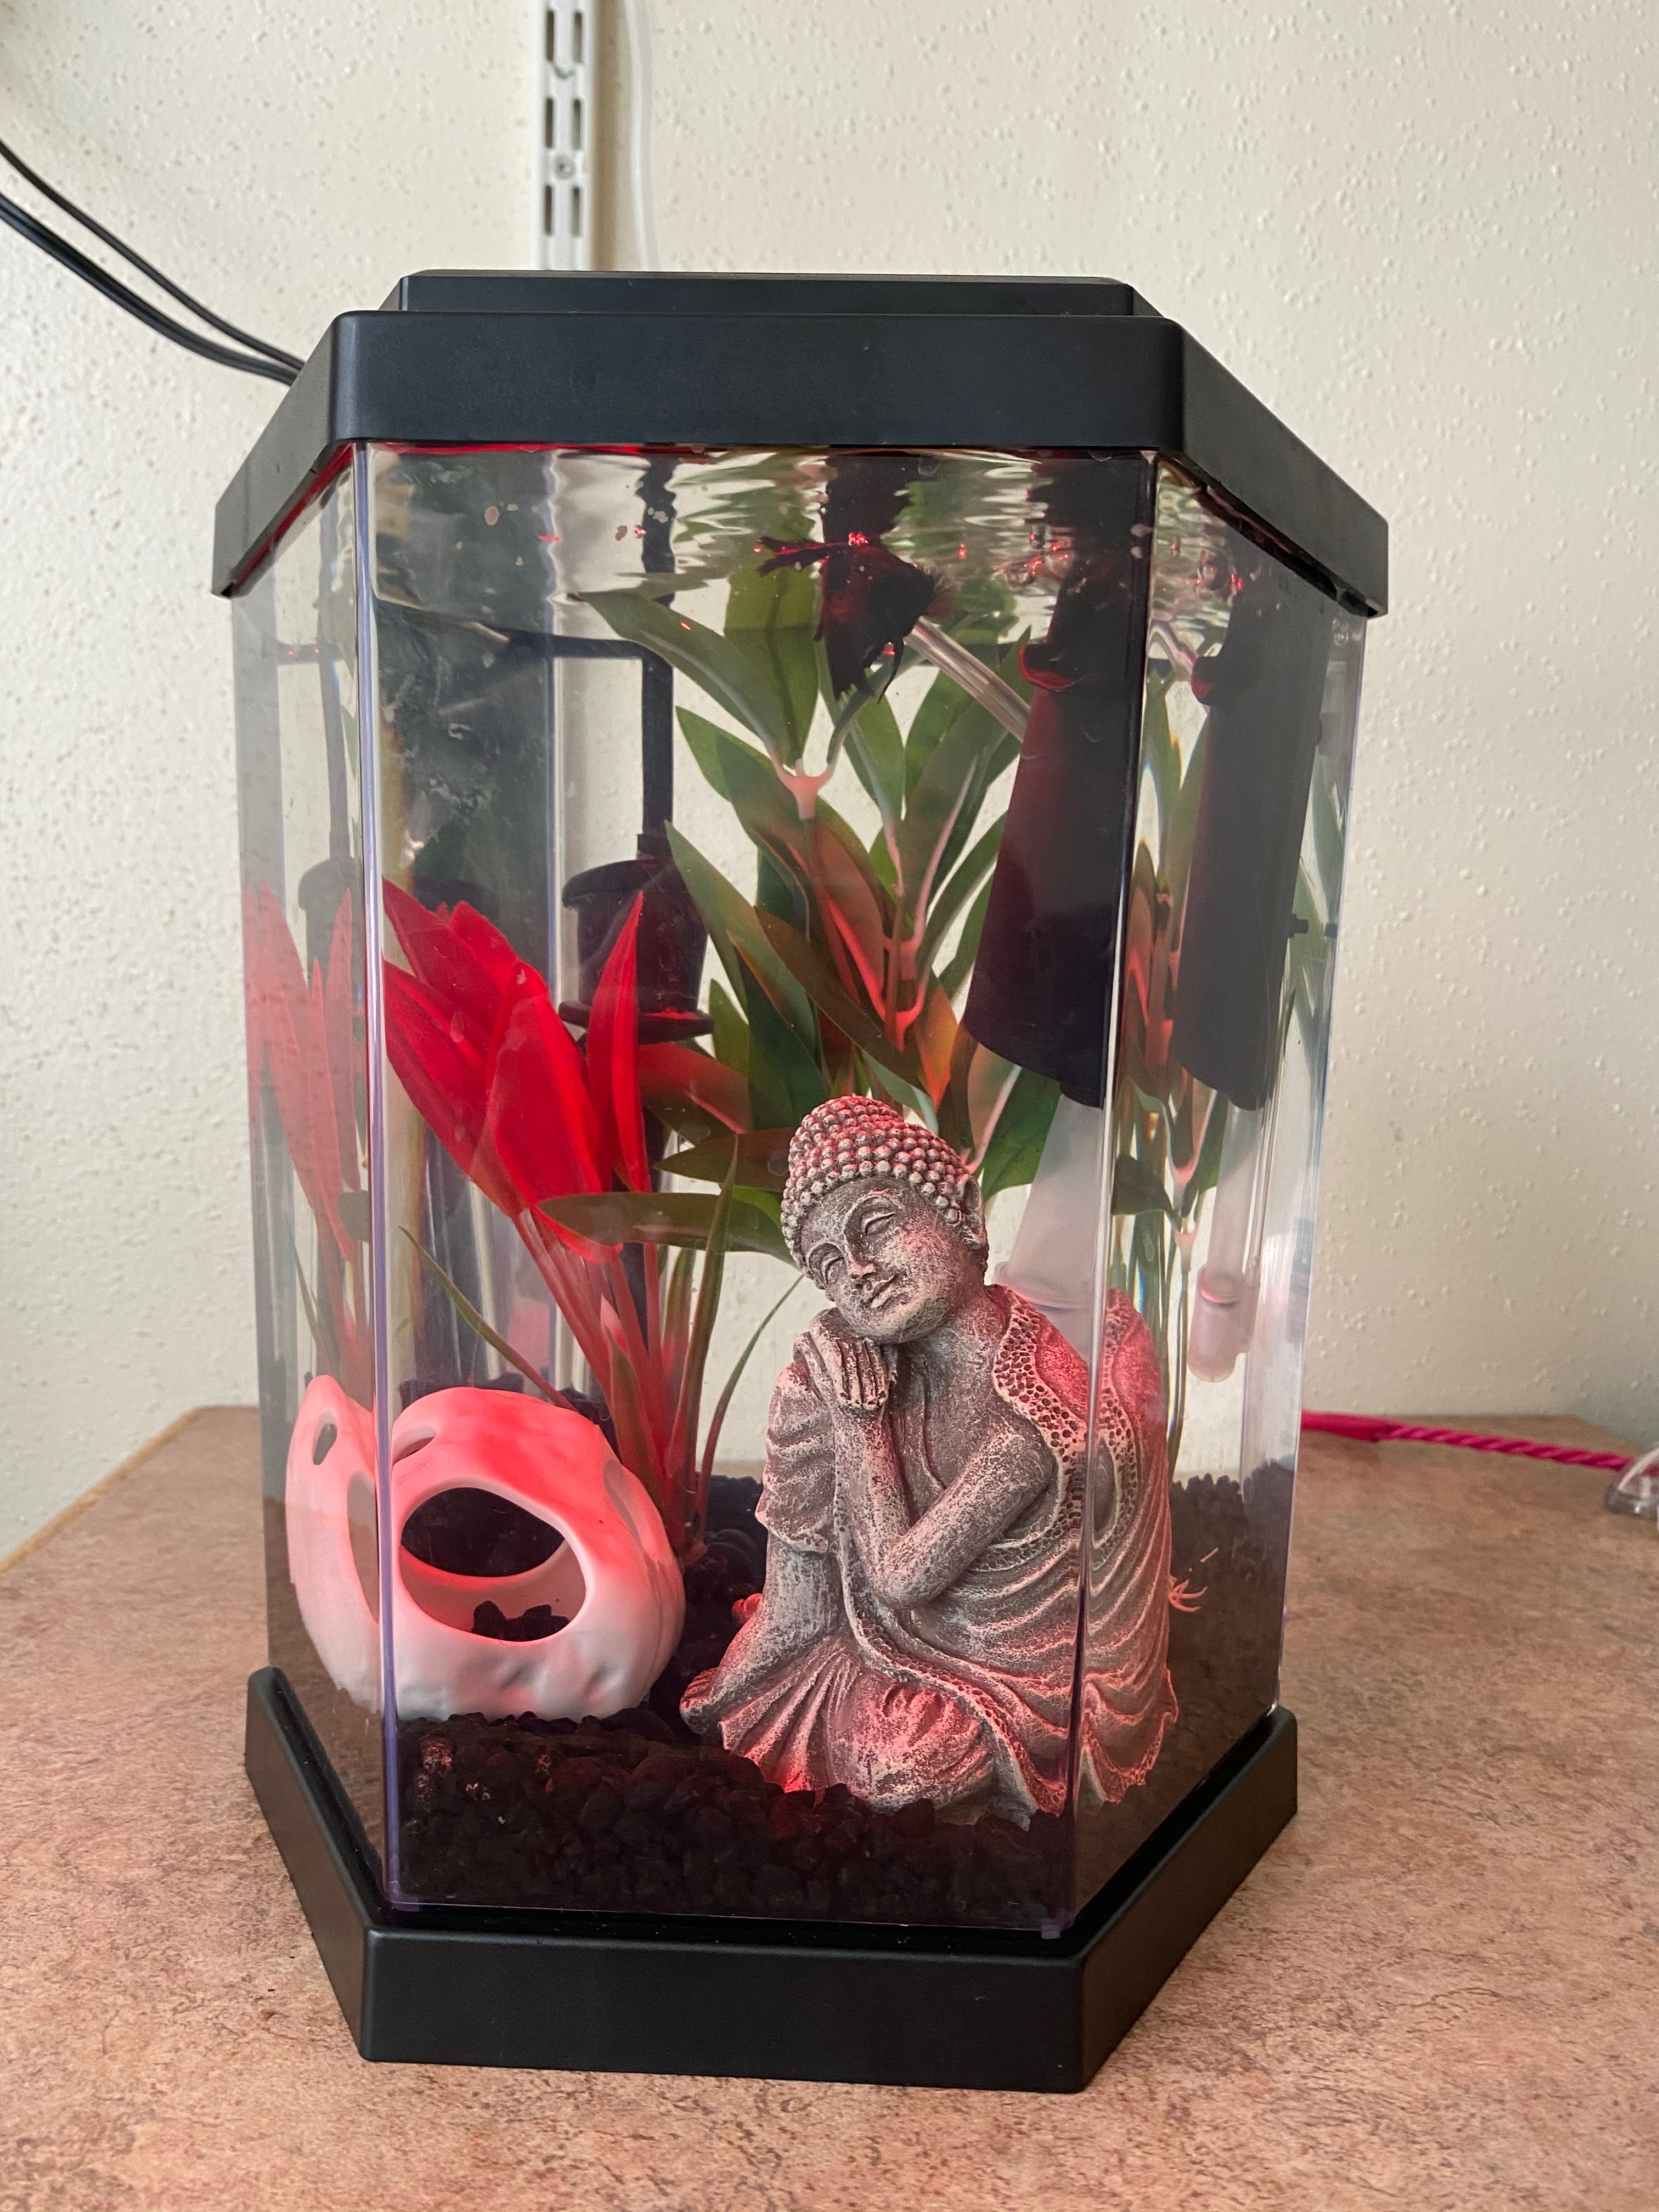 Raven, SU sophomore Ariel Samuel's betta fish, swims in her color-changing tank.